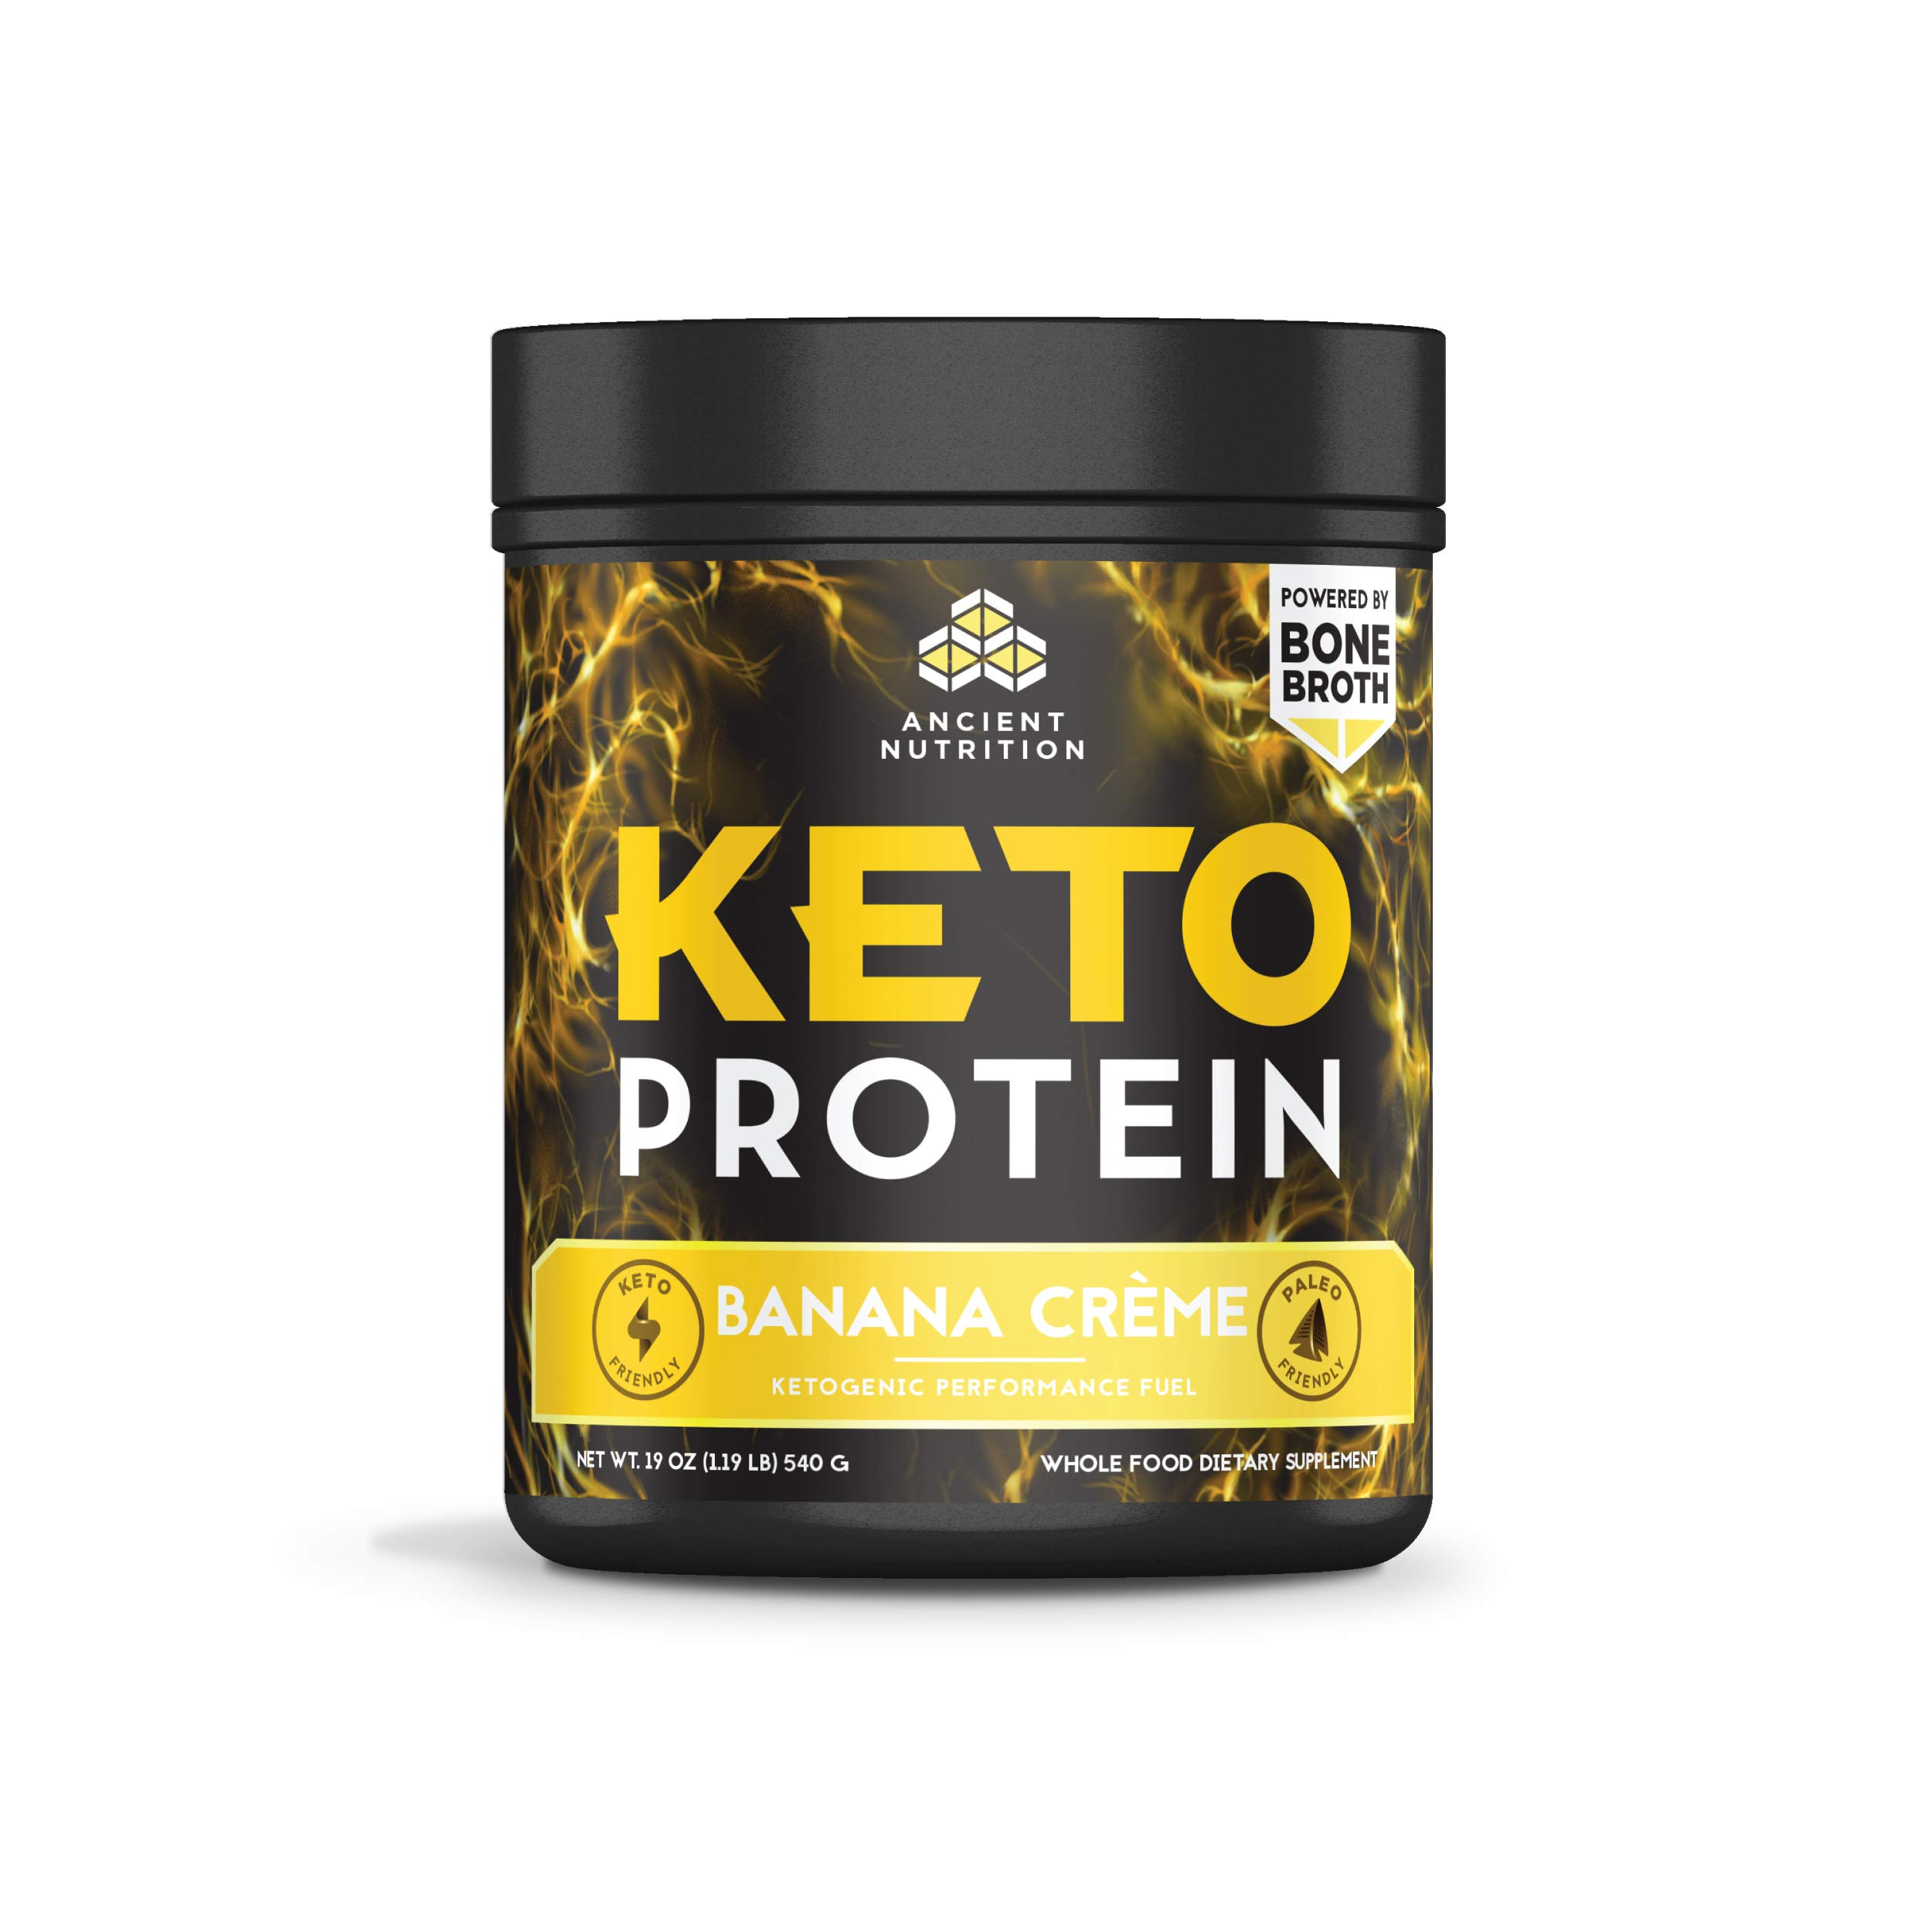 Ancient Nutrition KetoPROTEIN Powder Banana Creme, 17 Servings - Keto Diet Supplement, High Quality Low Carb Proteins and Fats from Bone Broth and MCT Oil by Ancient Nutrition